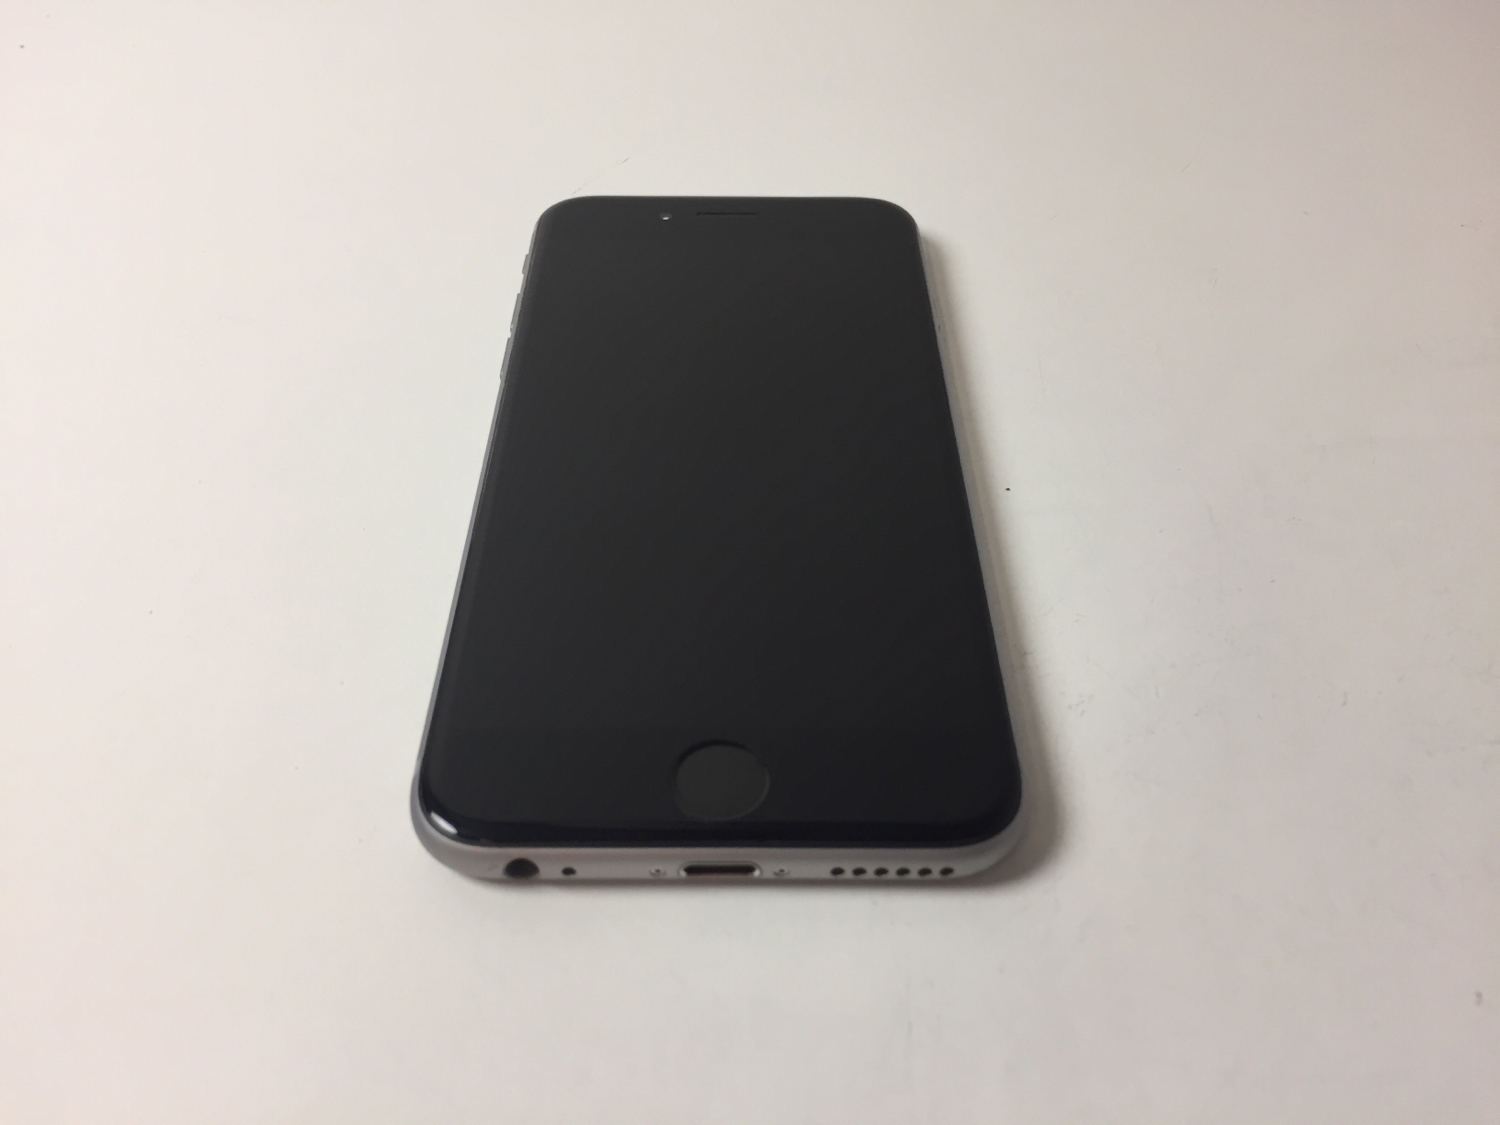 iPhone 6S 64GB, 64GB, SPACE GRAY, obraz 2